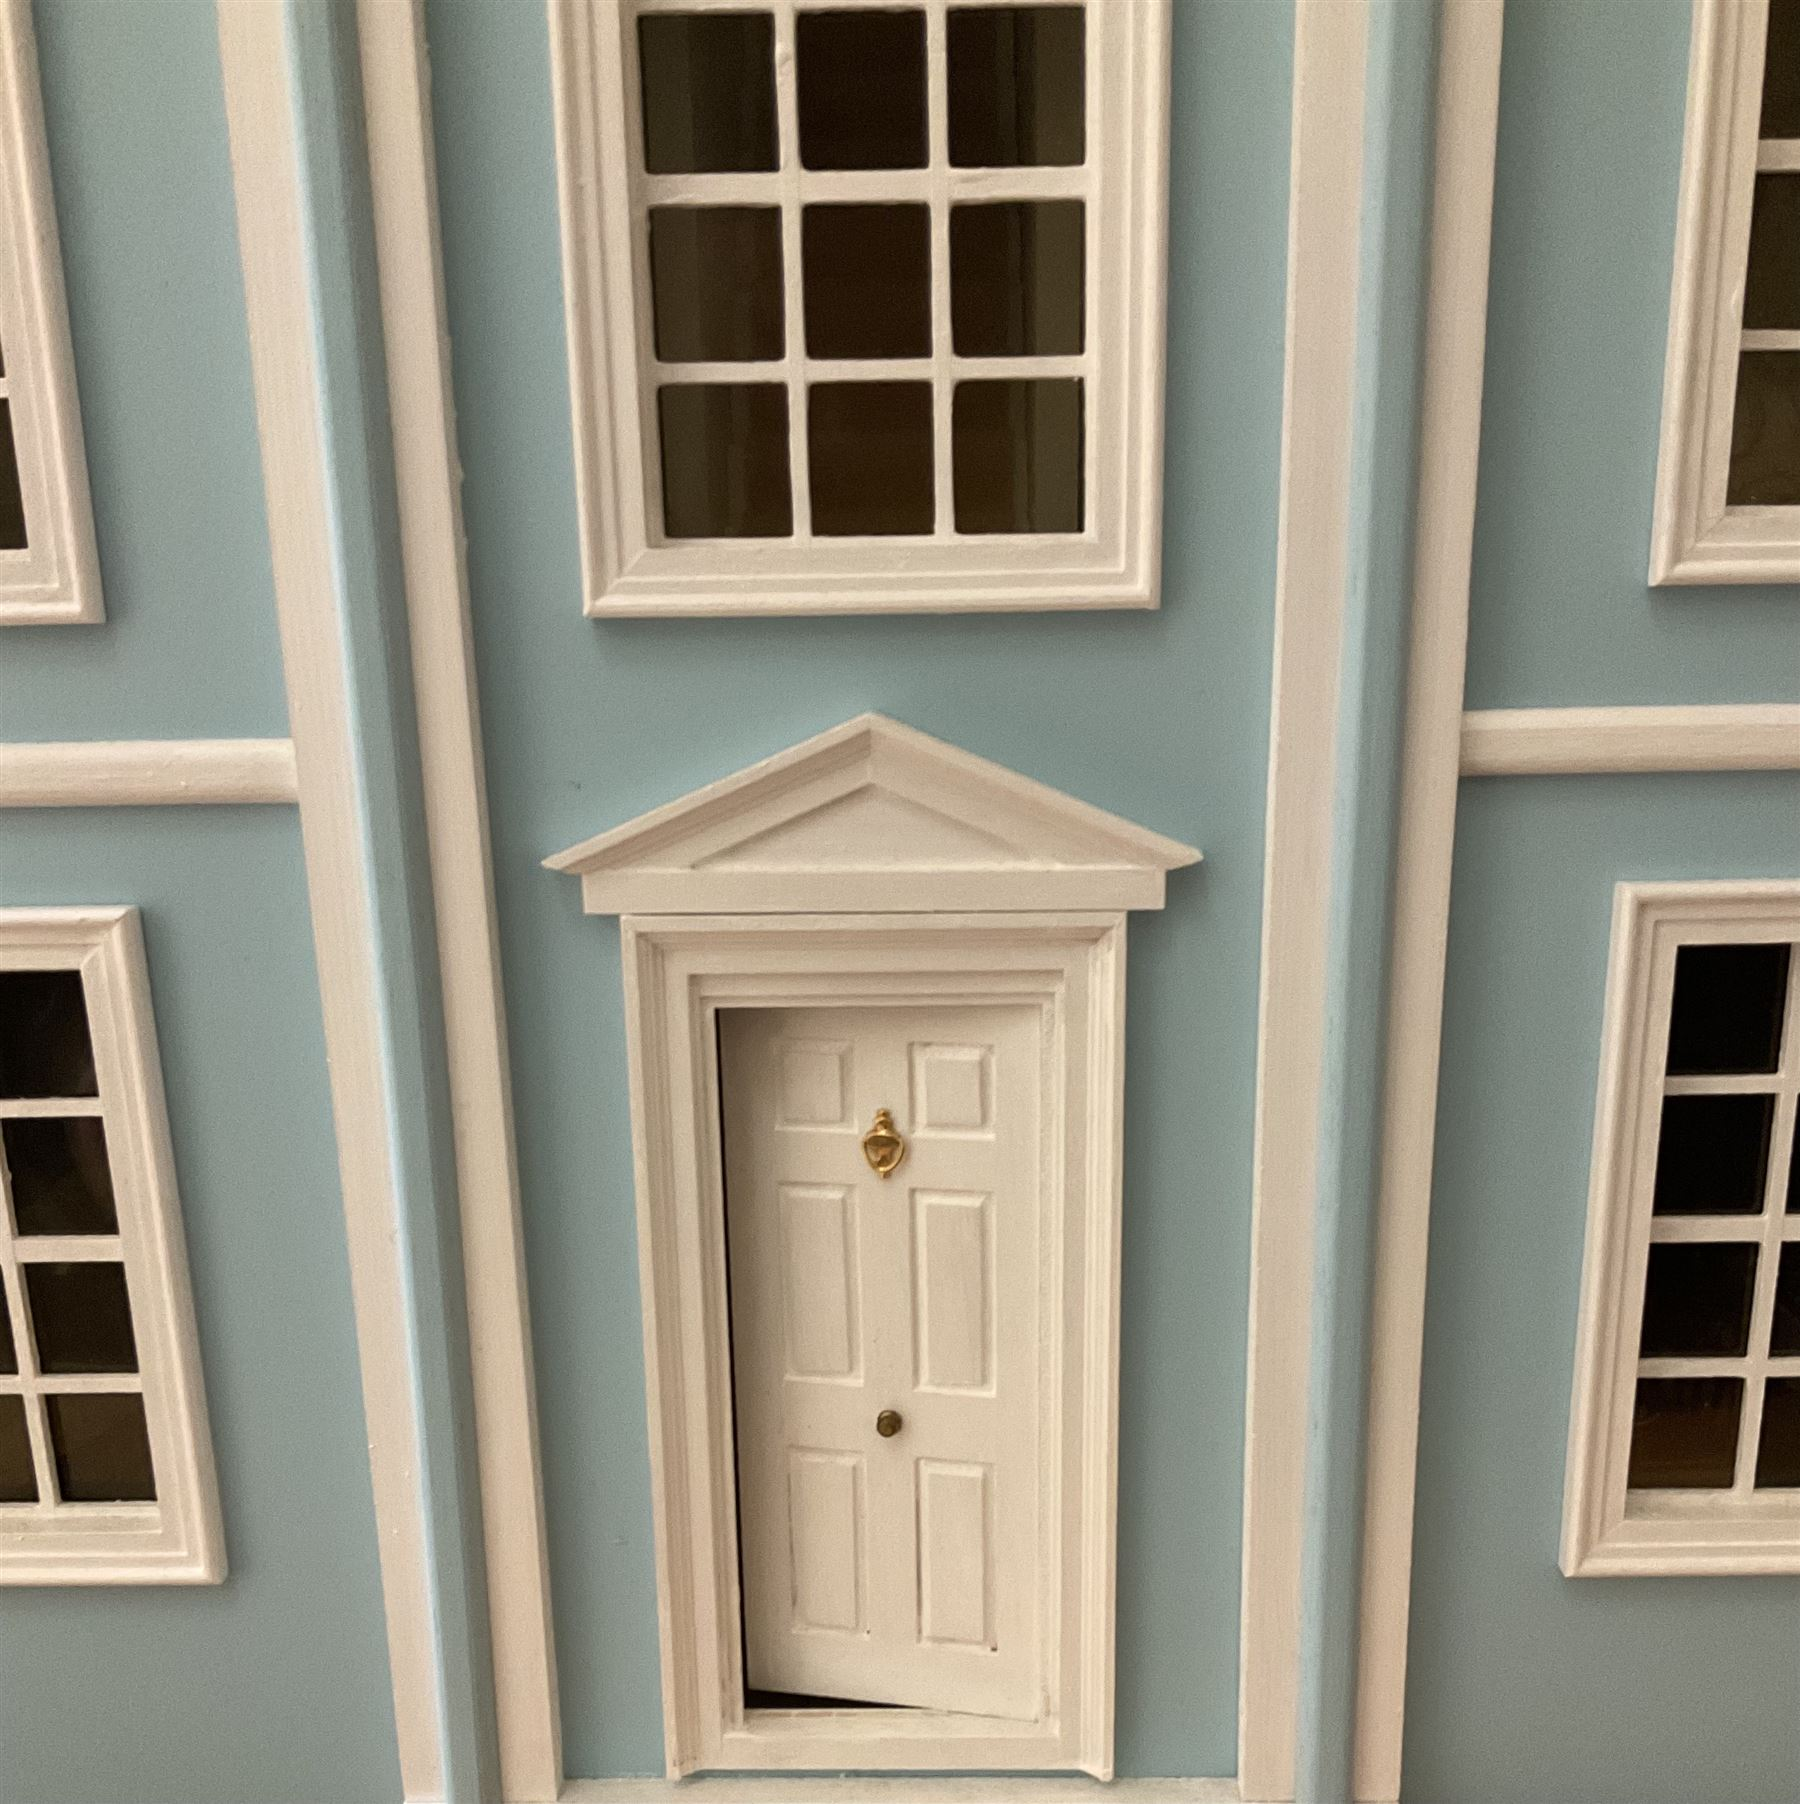 Georgian style wooden double fronted three-storey dolls house with pale blue stucco finish under a f - Image 2 of 12